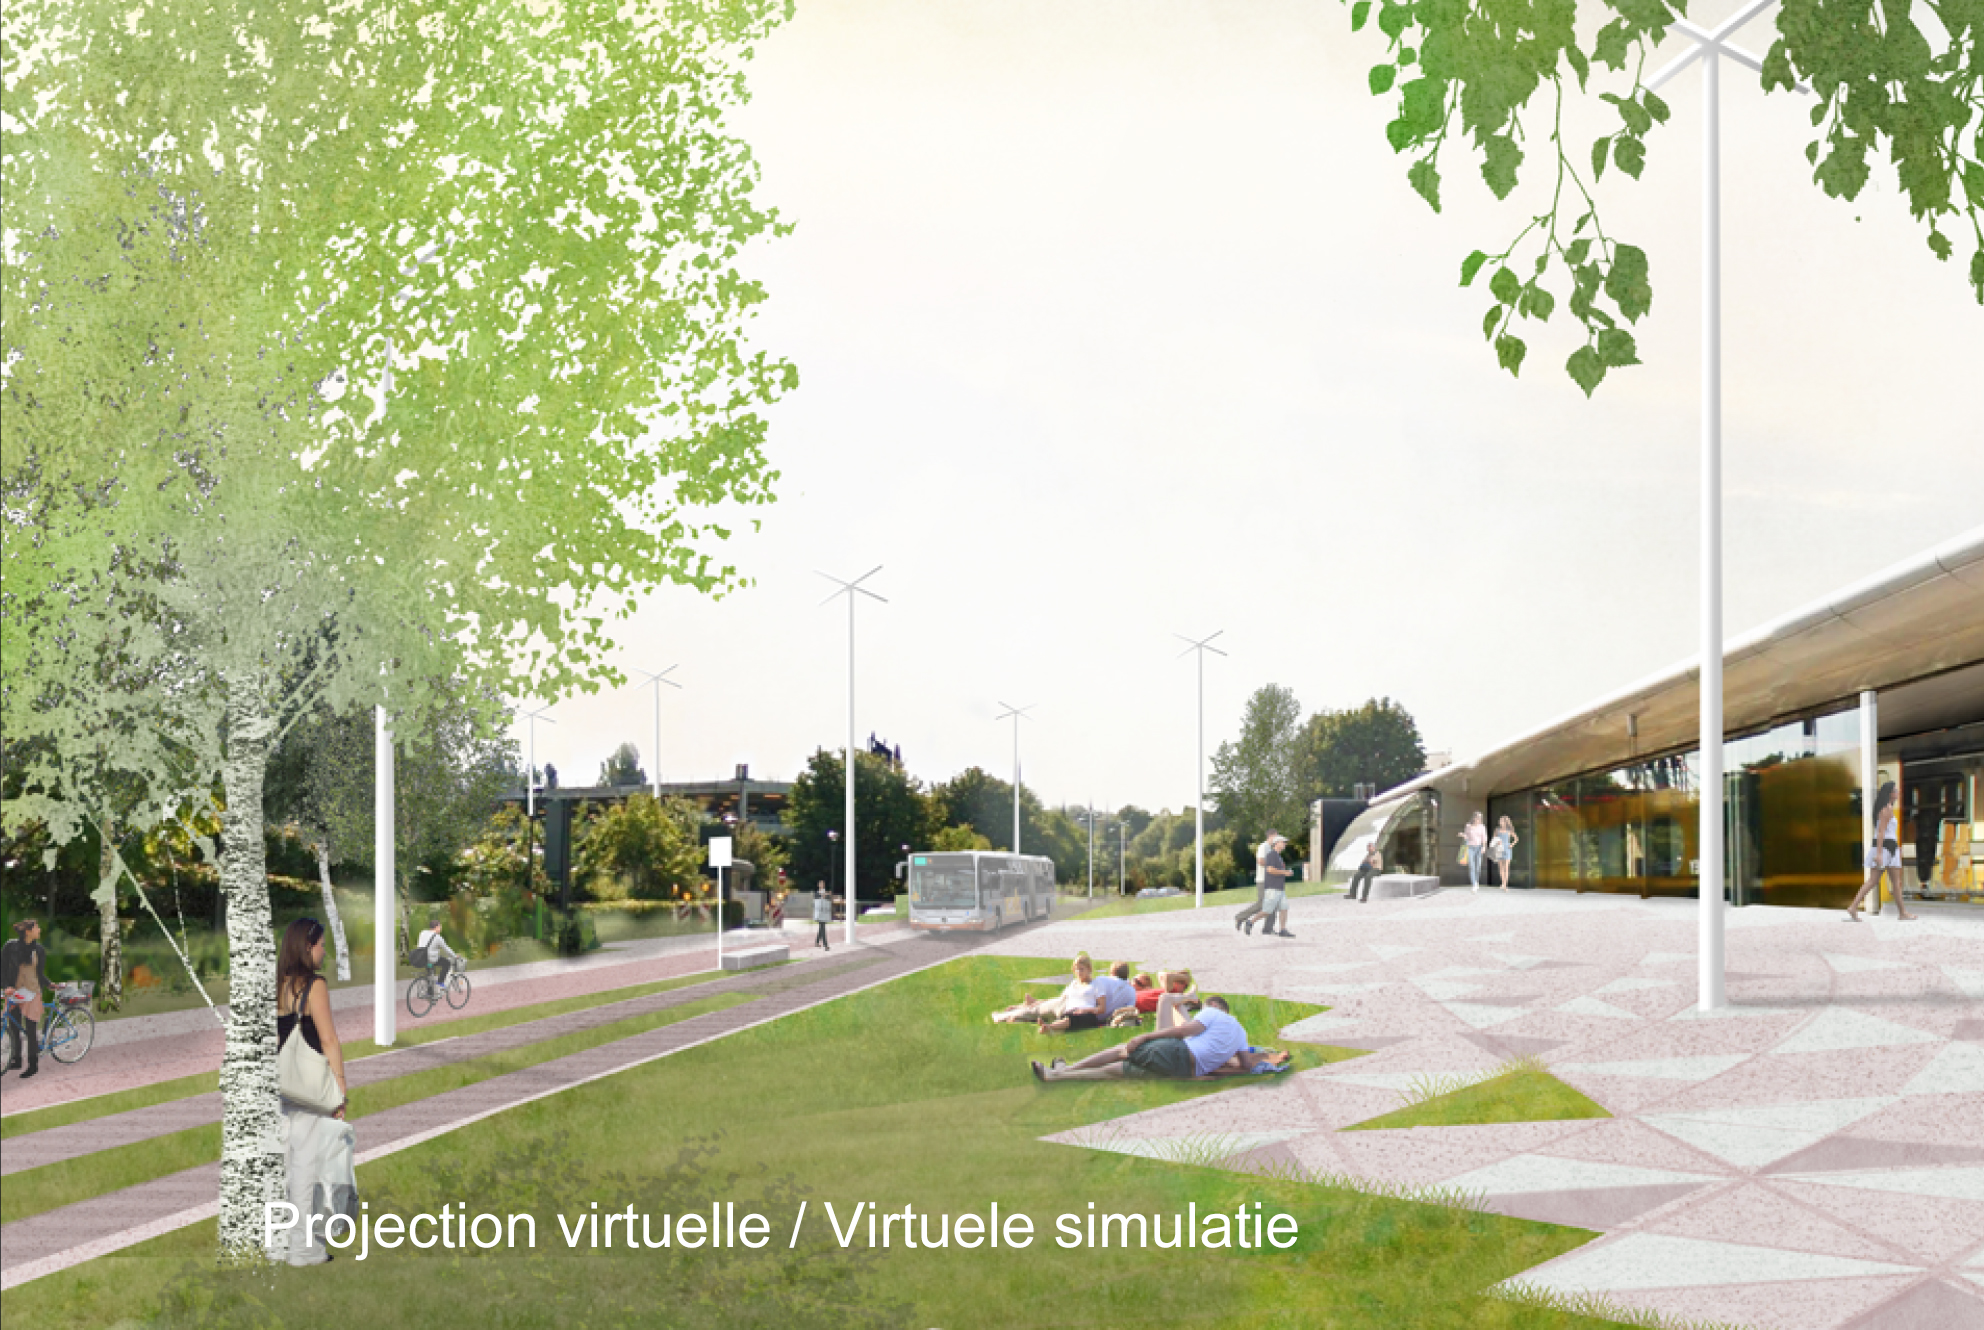 Projection virtuelle / Virtuele simulatie